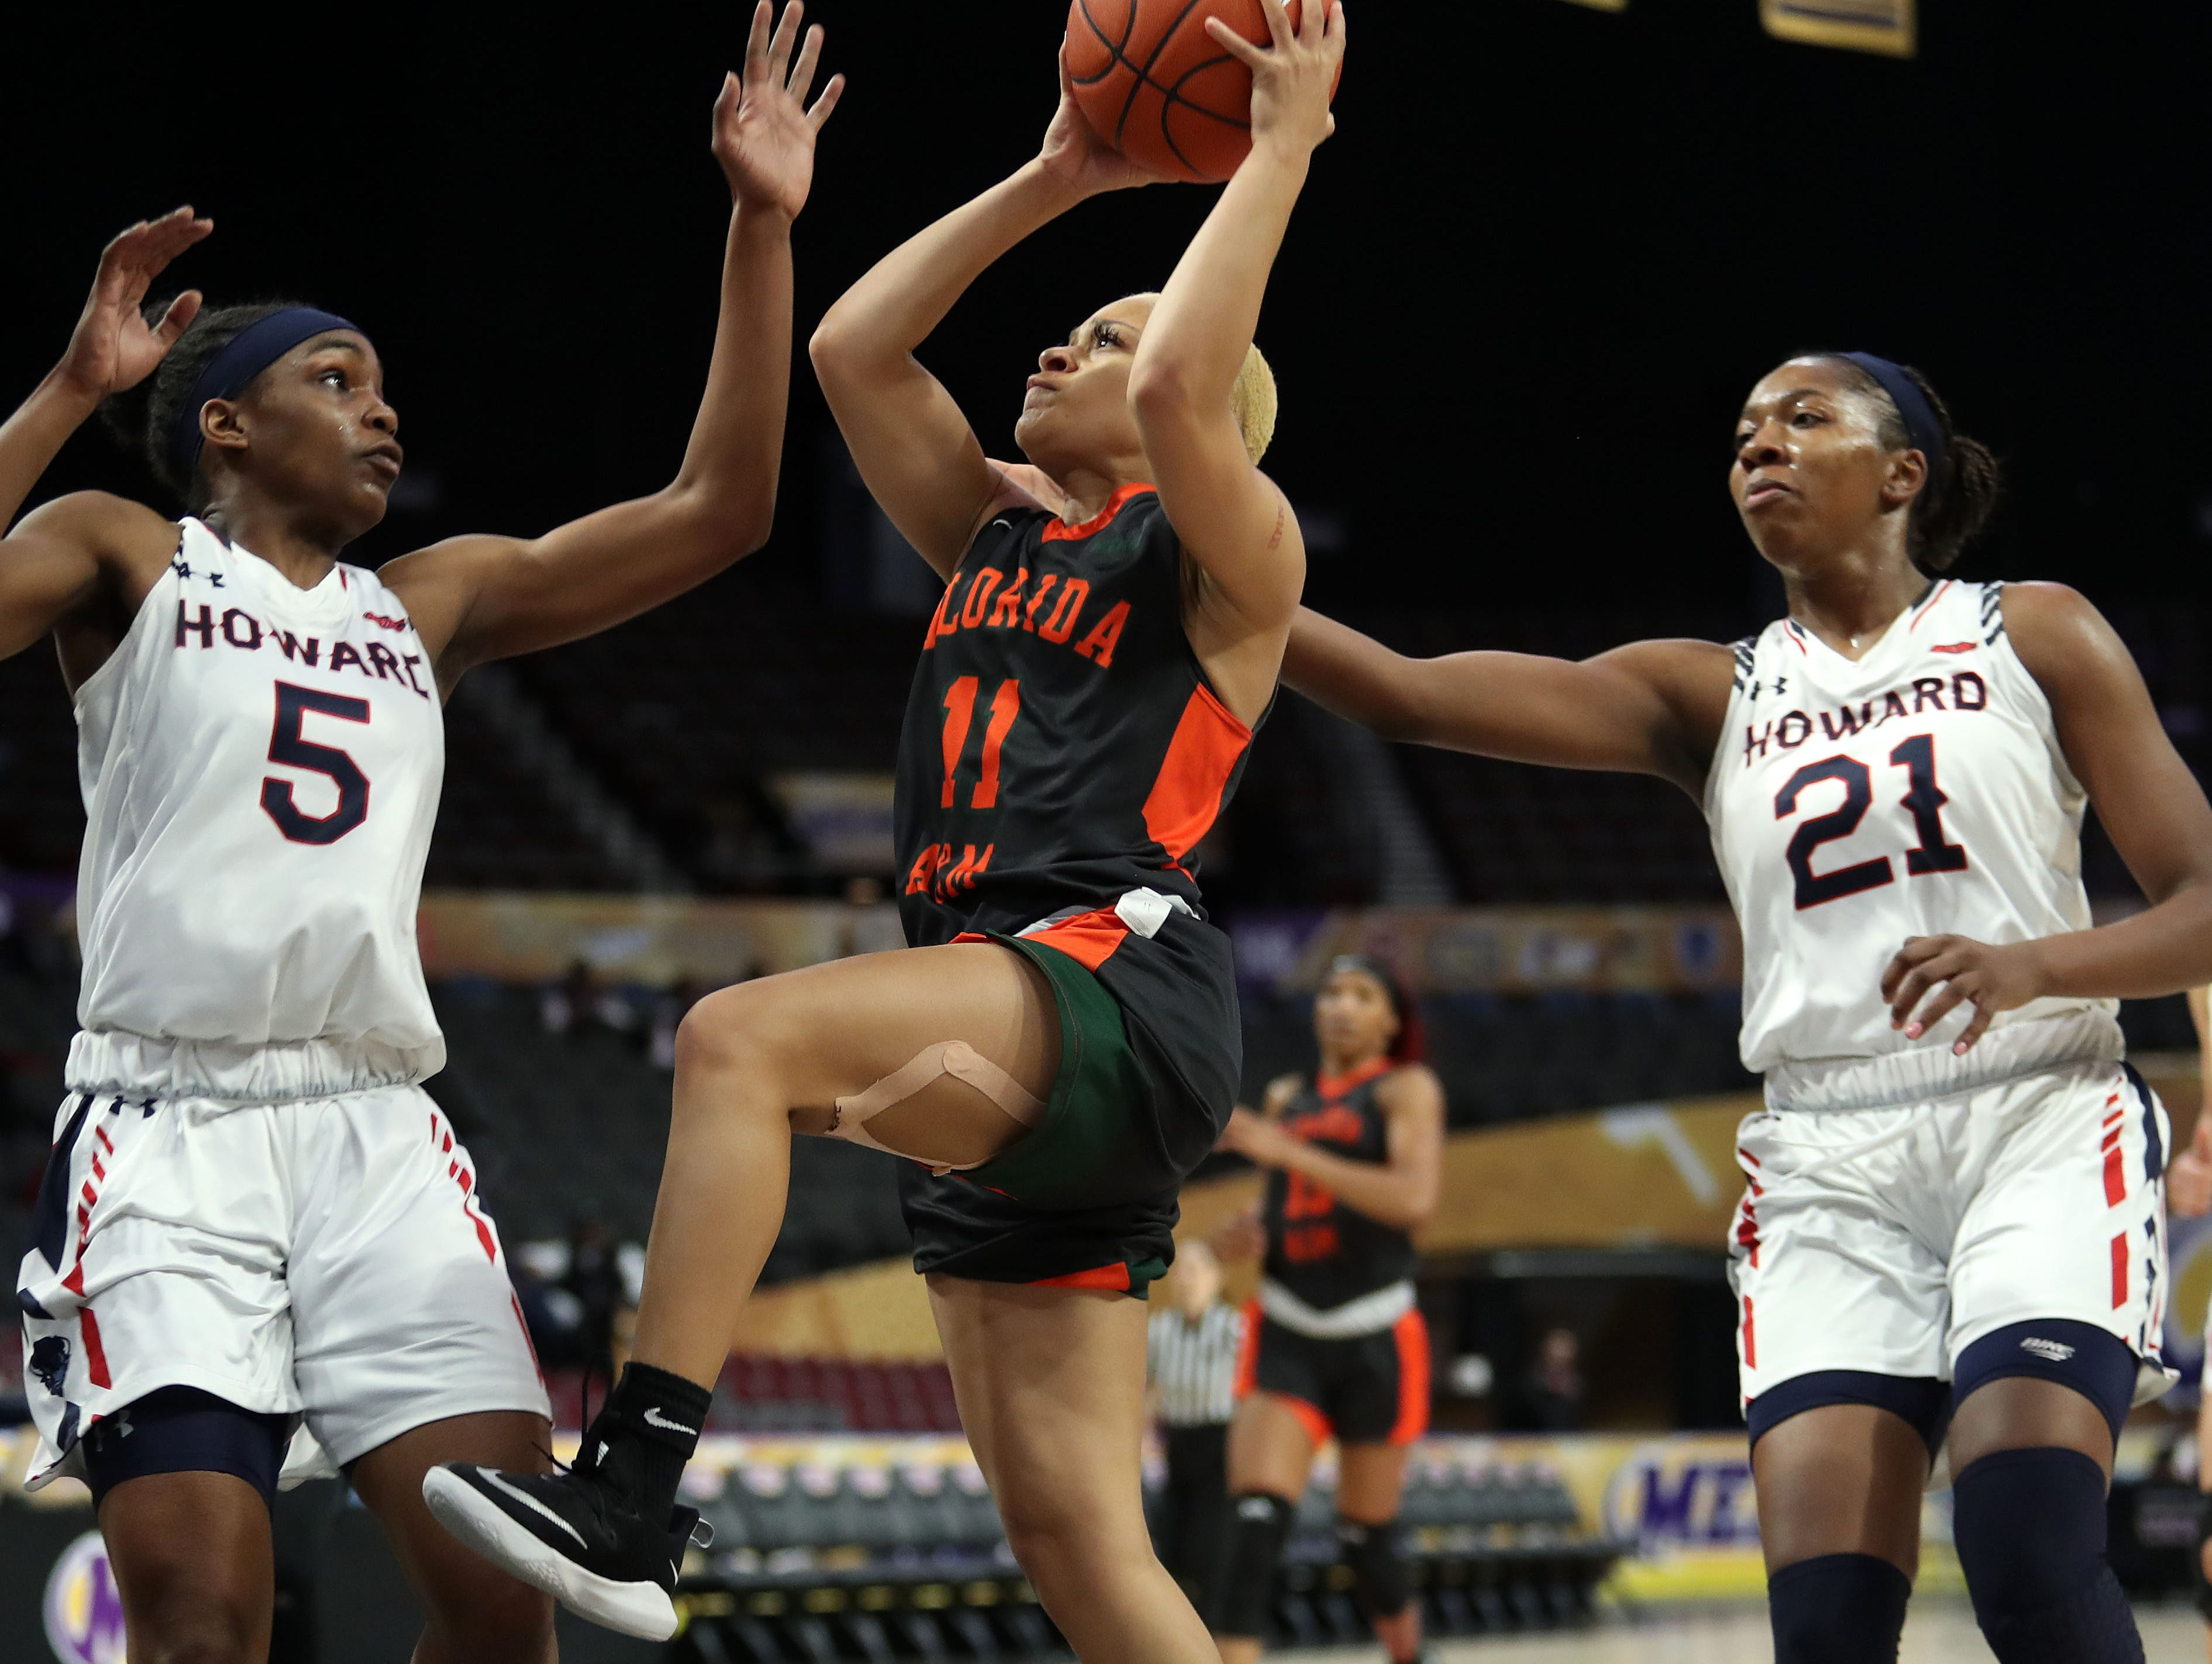 FAMU guard Morgan Mitchell looks to score over Sarah Edmond (5) and Star Fitzgerald-Greer (21) in the first round of the MEAC tournament on Monday, March 11, 2019.